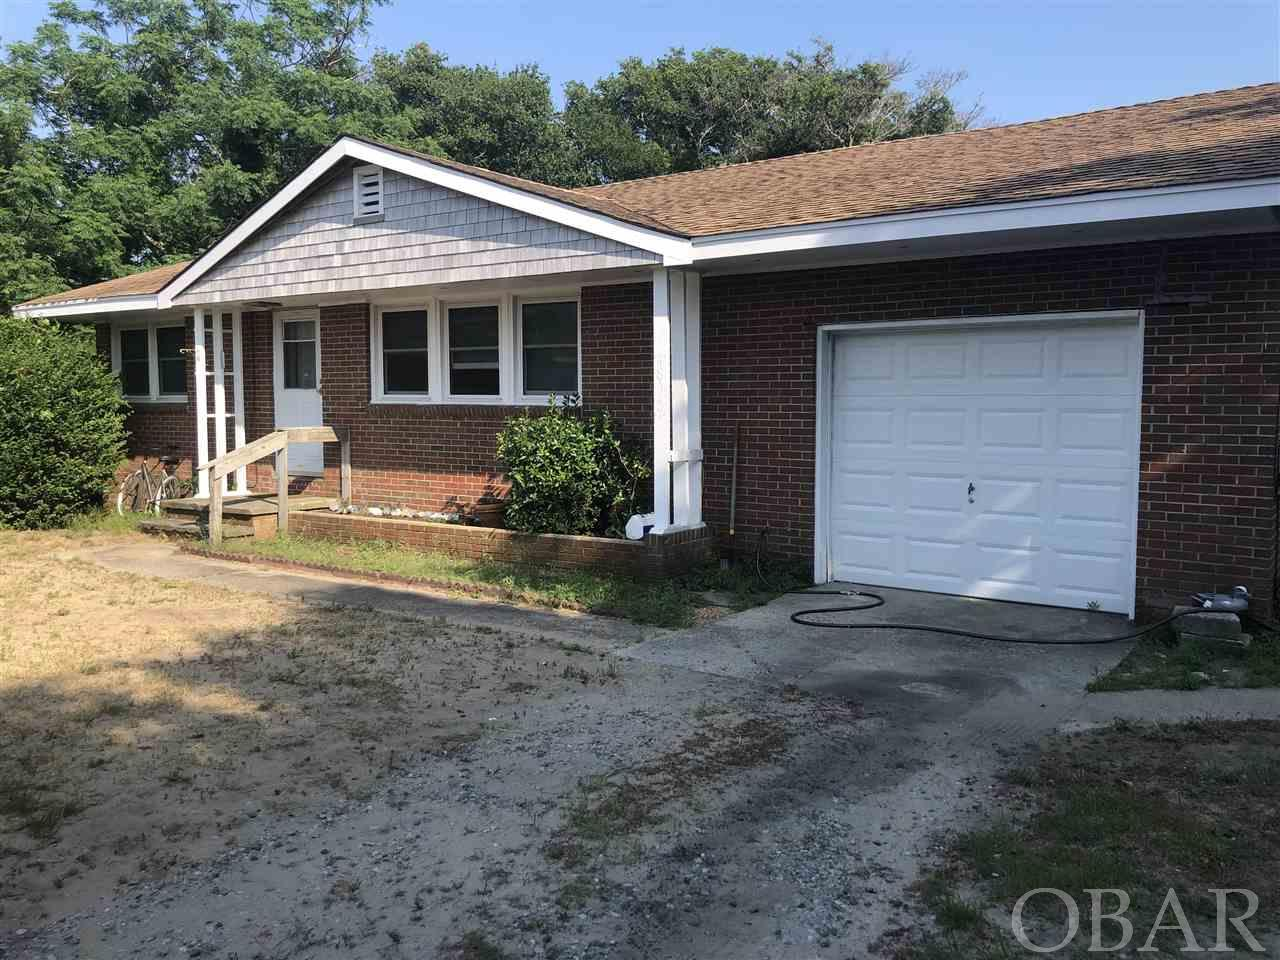 48045 NC 12 Highway, Buxton, NC 27920, 7 Bedrooms Bedrooms, ,5 BathroomsBathrooms,Residential,For sale,NC 12 Highway,105289